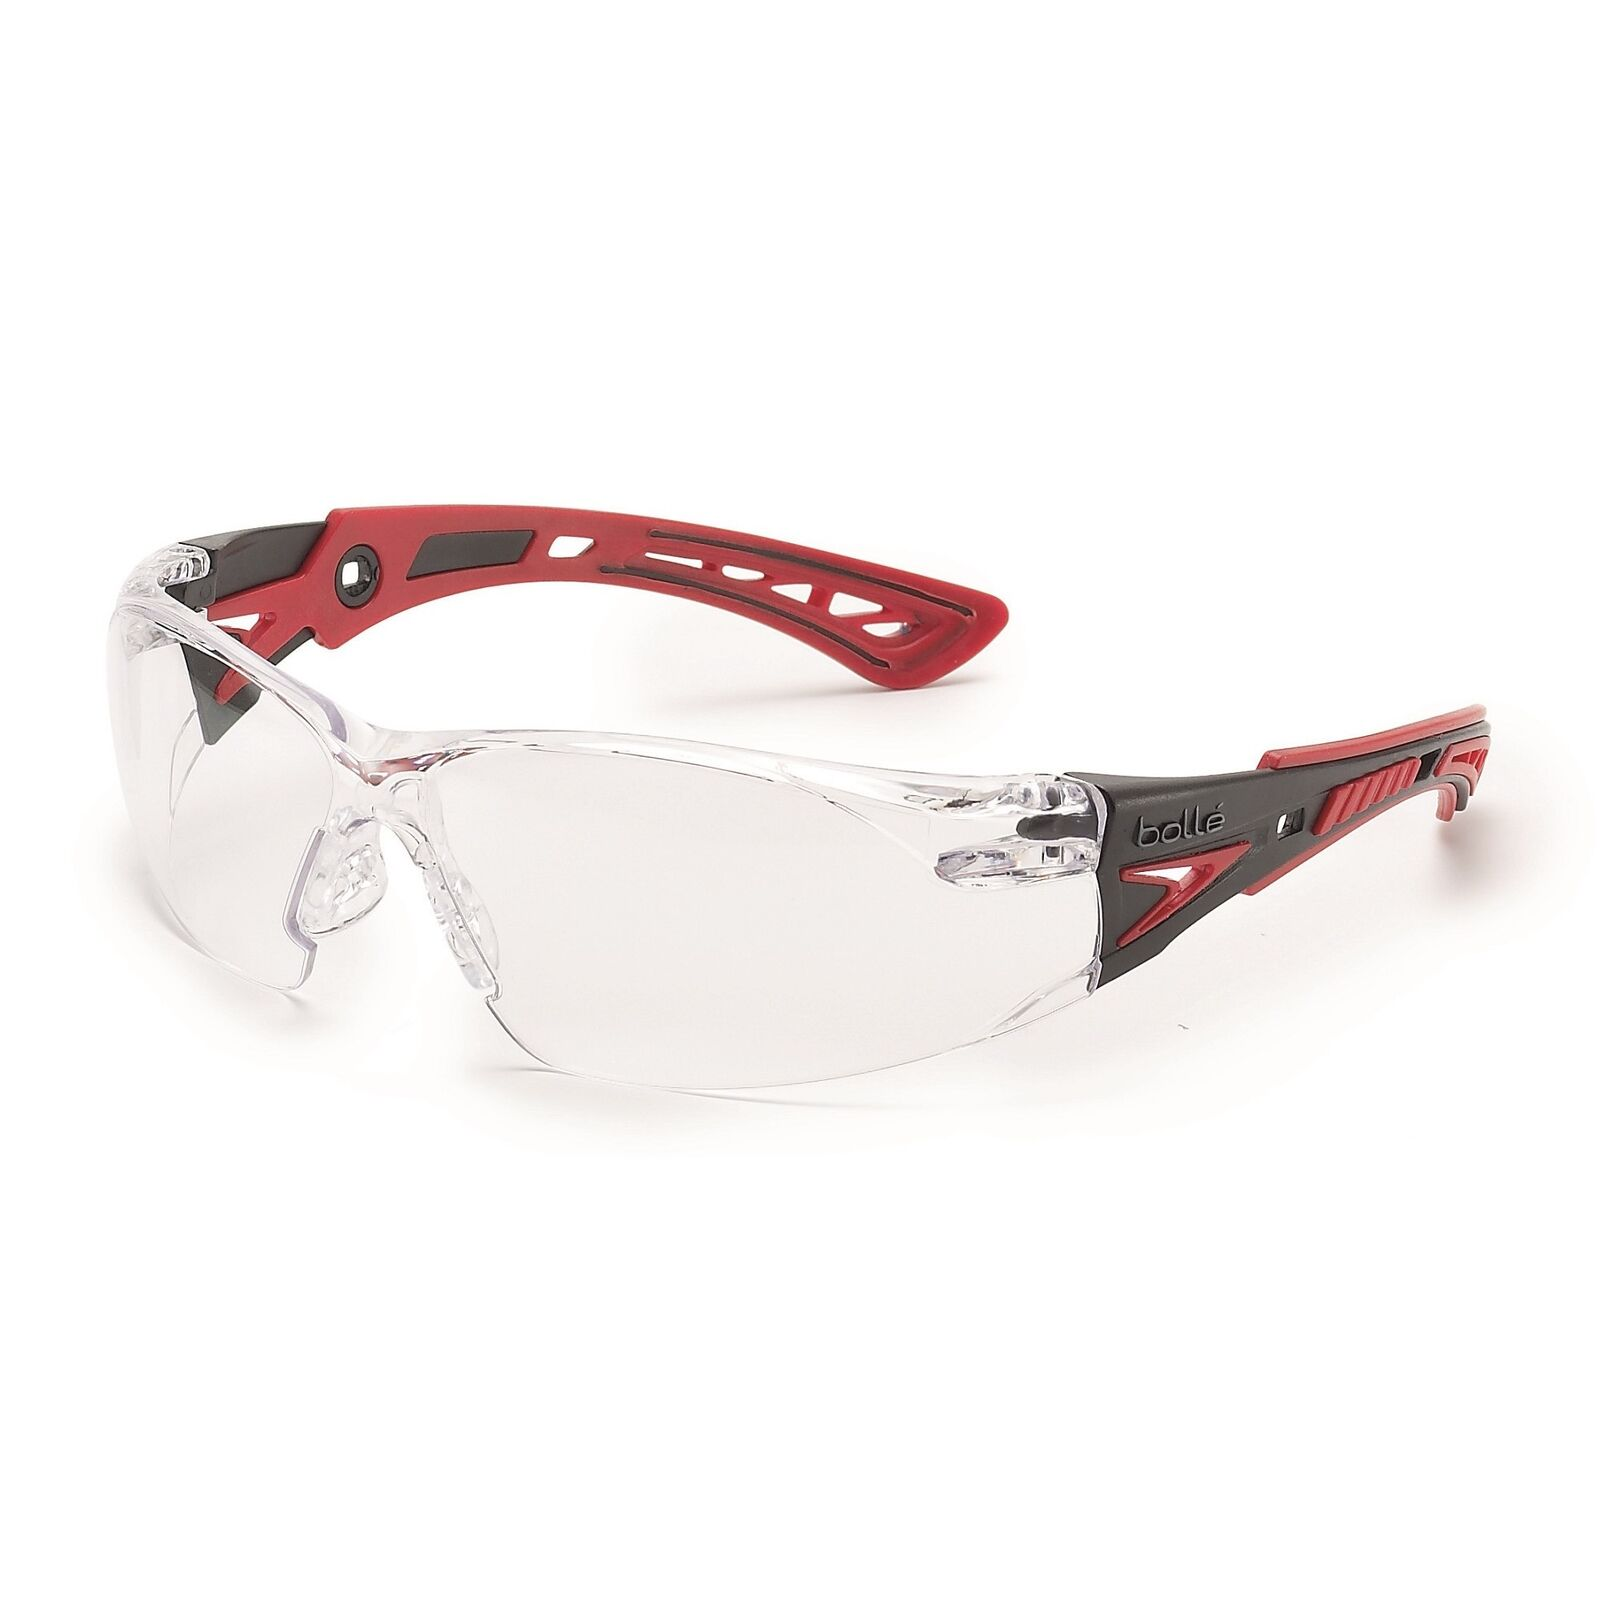 Bolle Clear Safety Glasses, Anti-Fog, Scratch-Resistant,